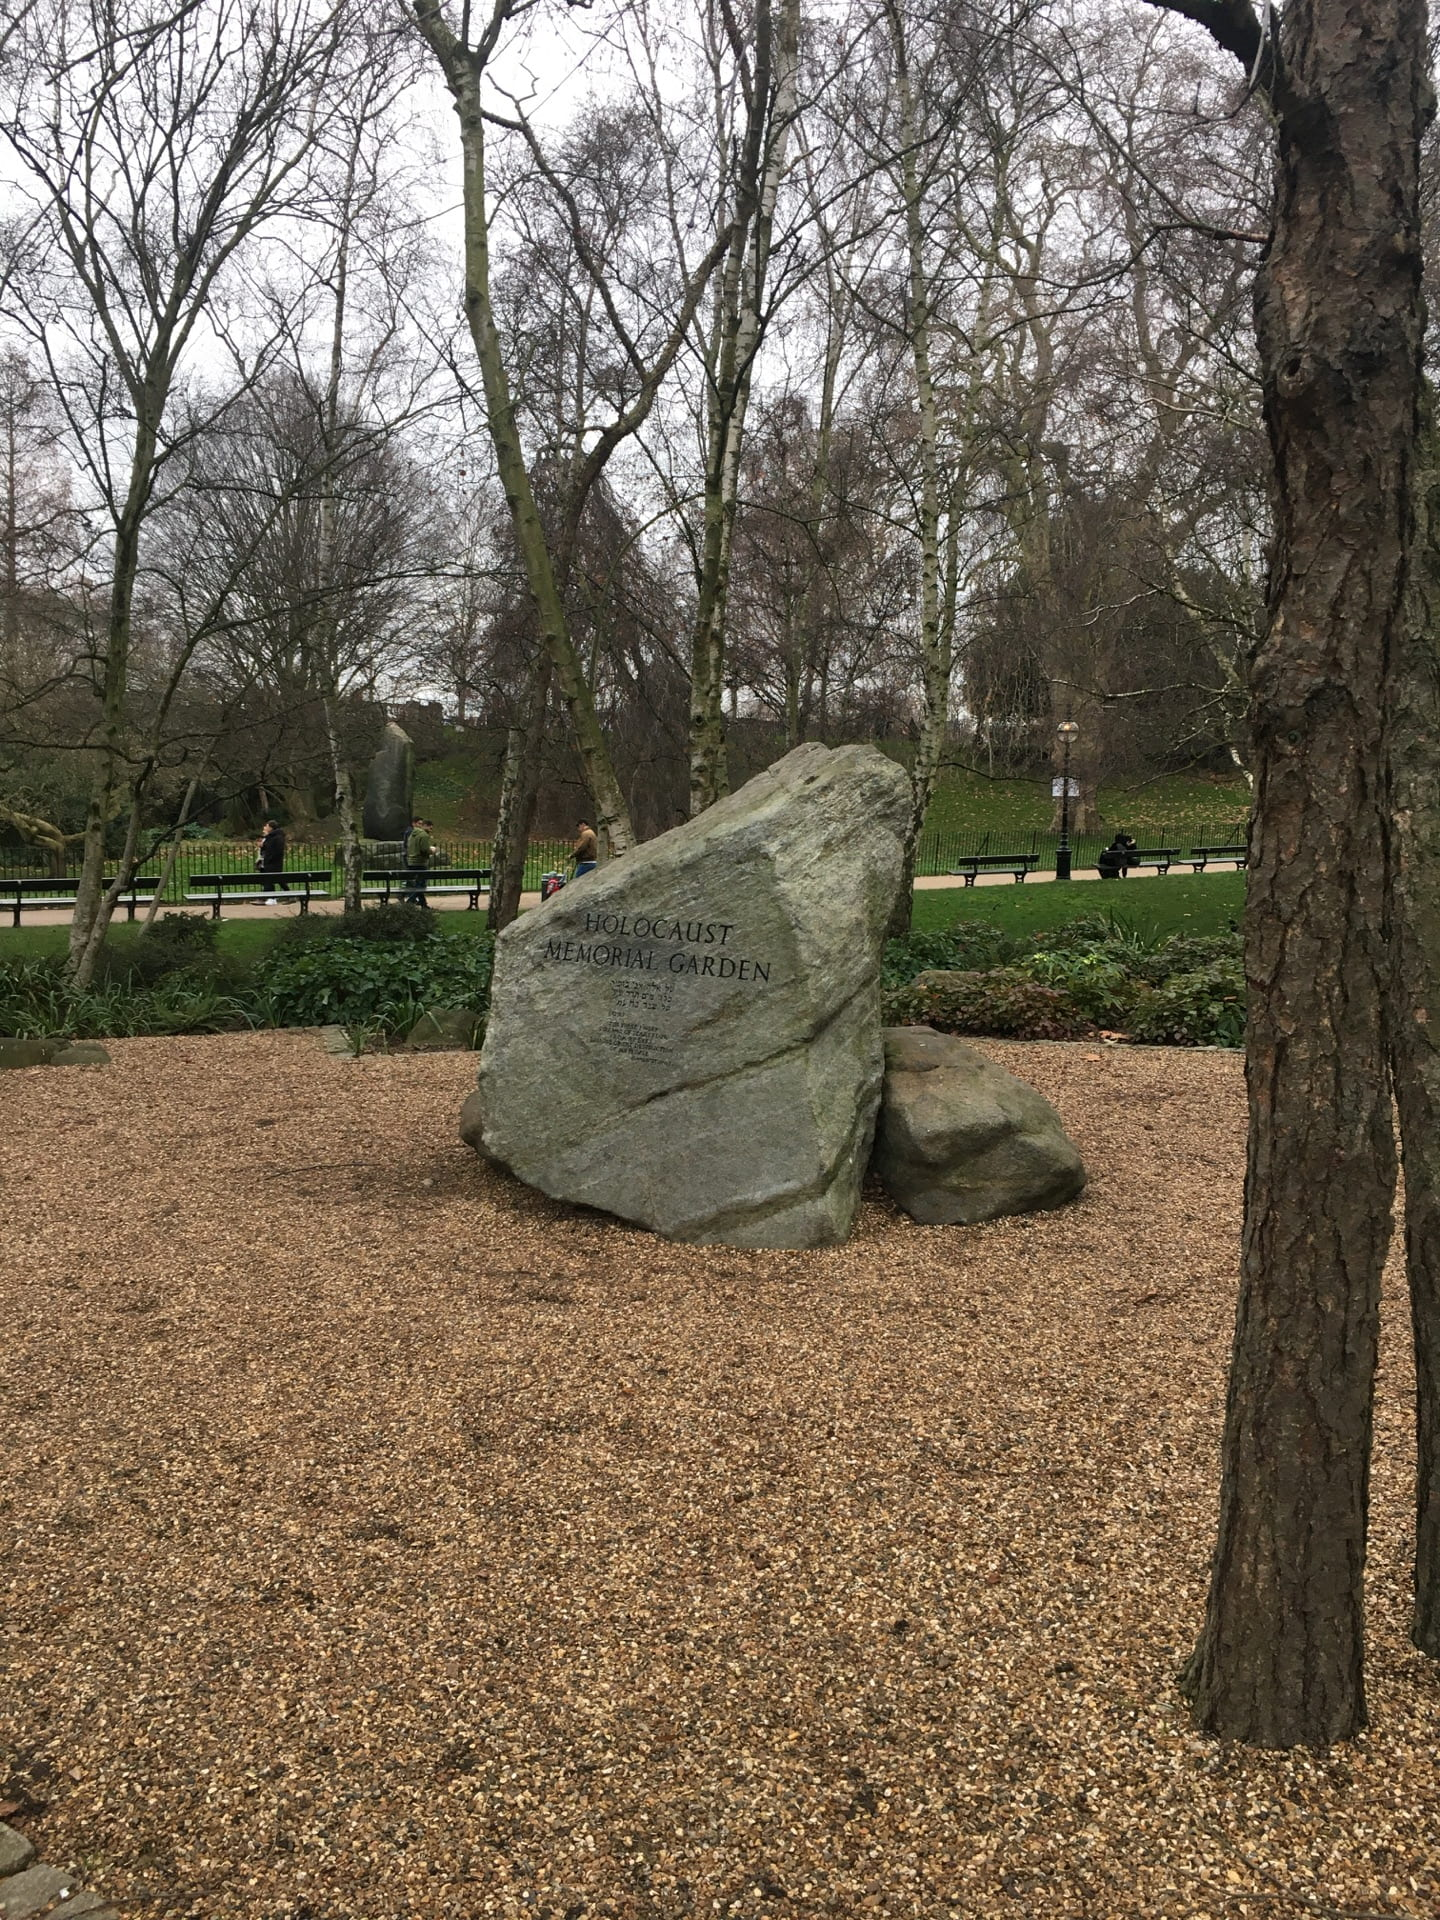 A picture of the Holocaust memorial garden in Hyde Park